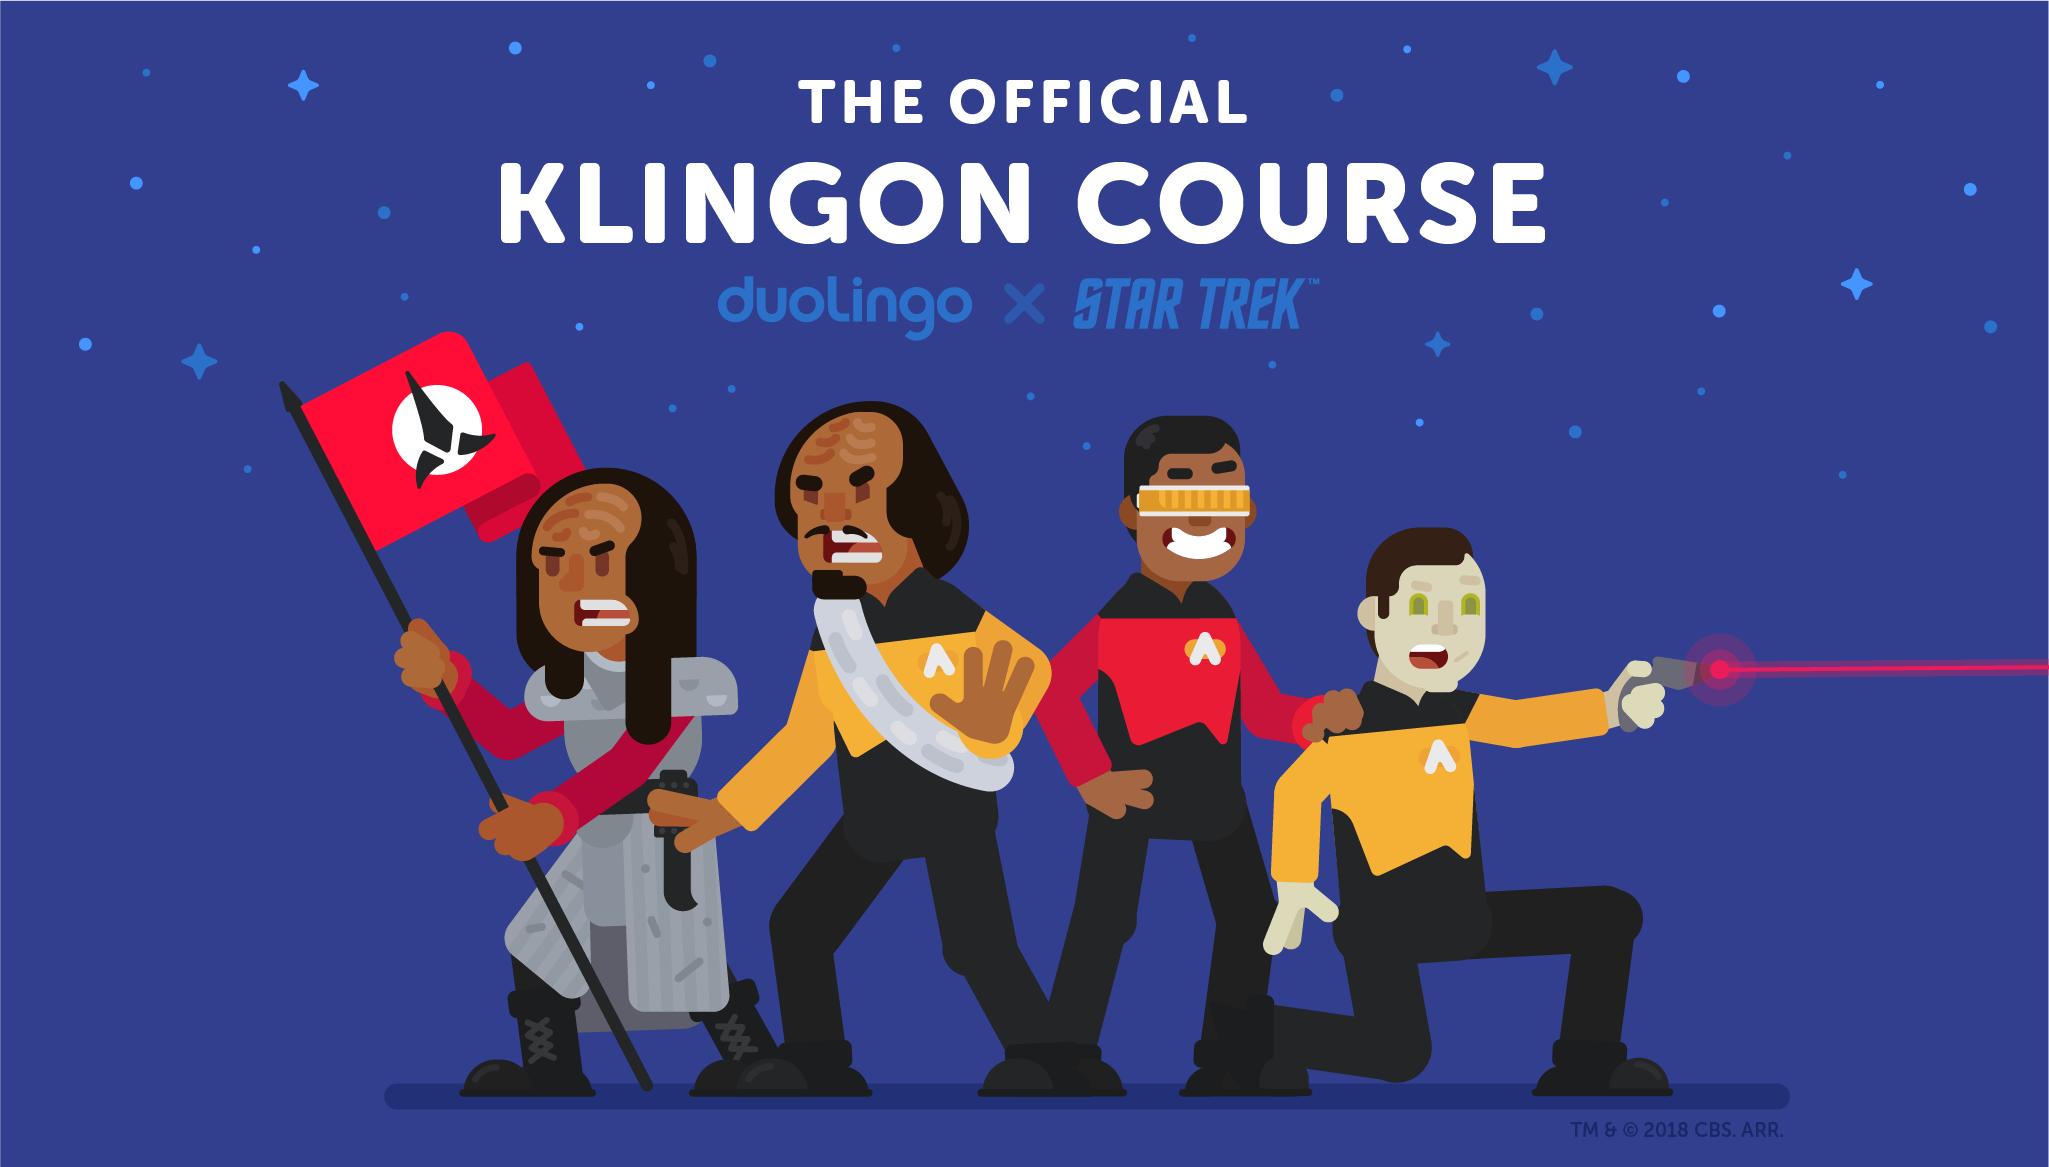 Star Trek illustrations introducing the Klingon course